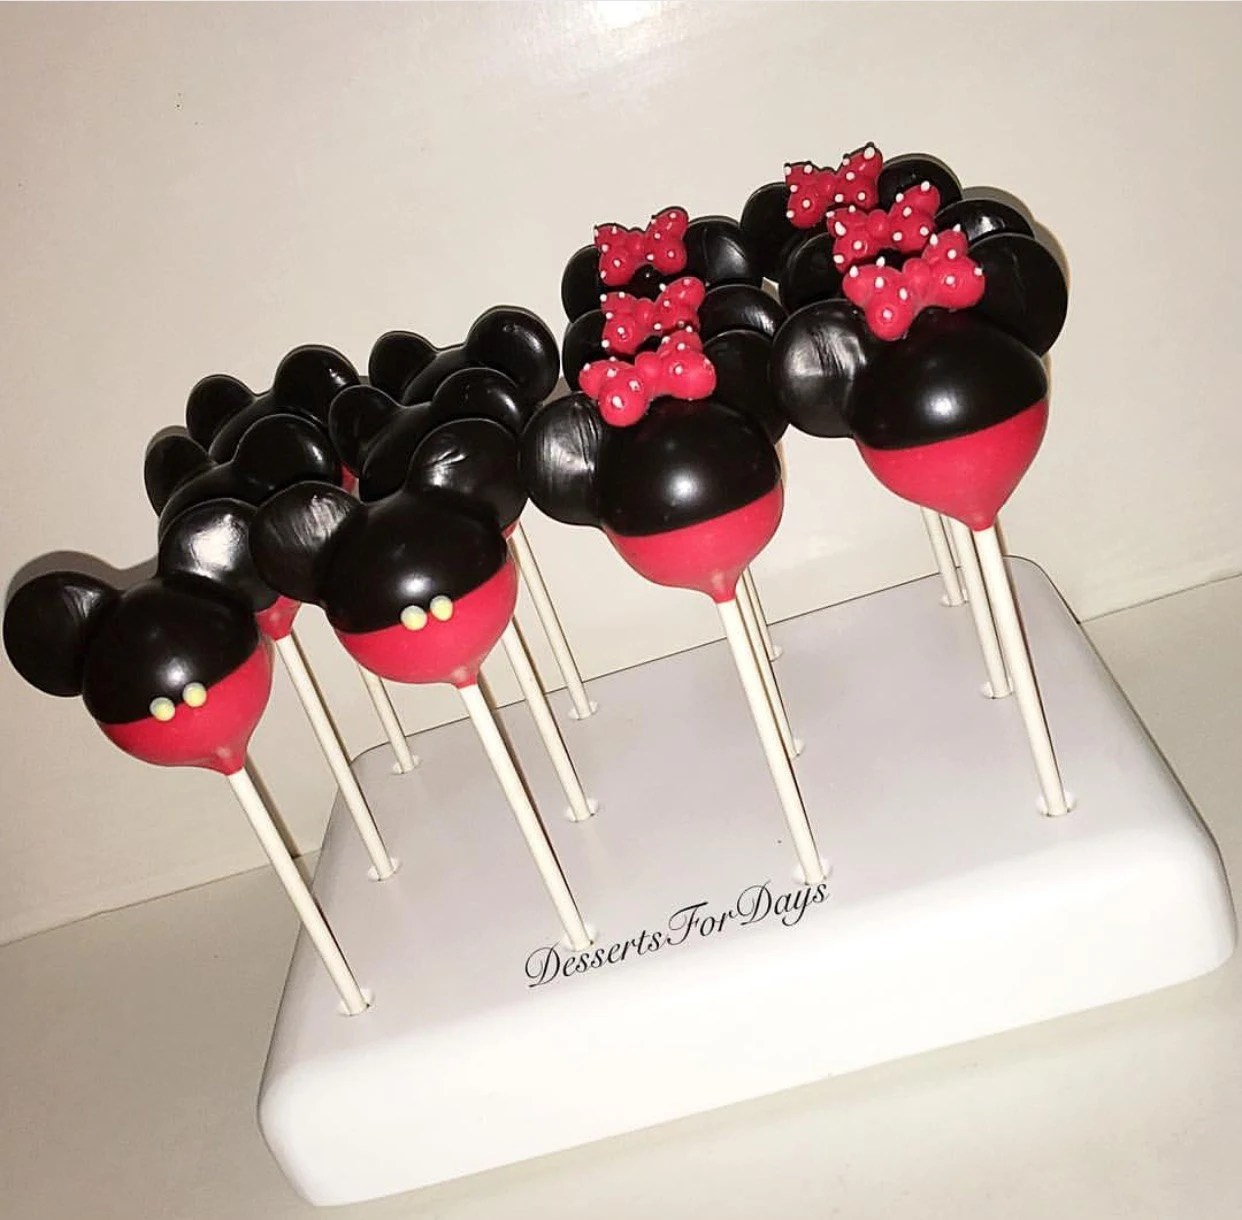 1 Dz Mickey And Minnie Mouse Cake Pops Dessert Table Party Etsy